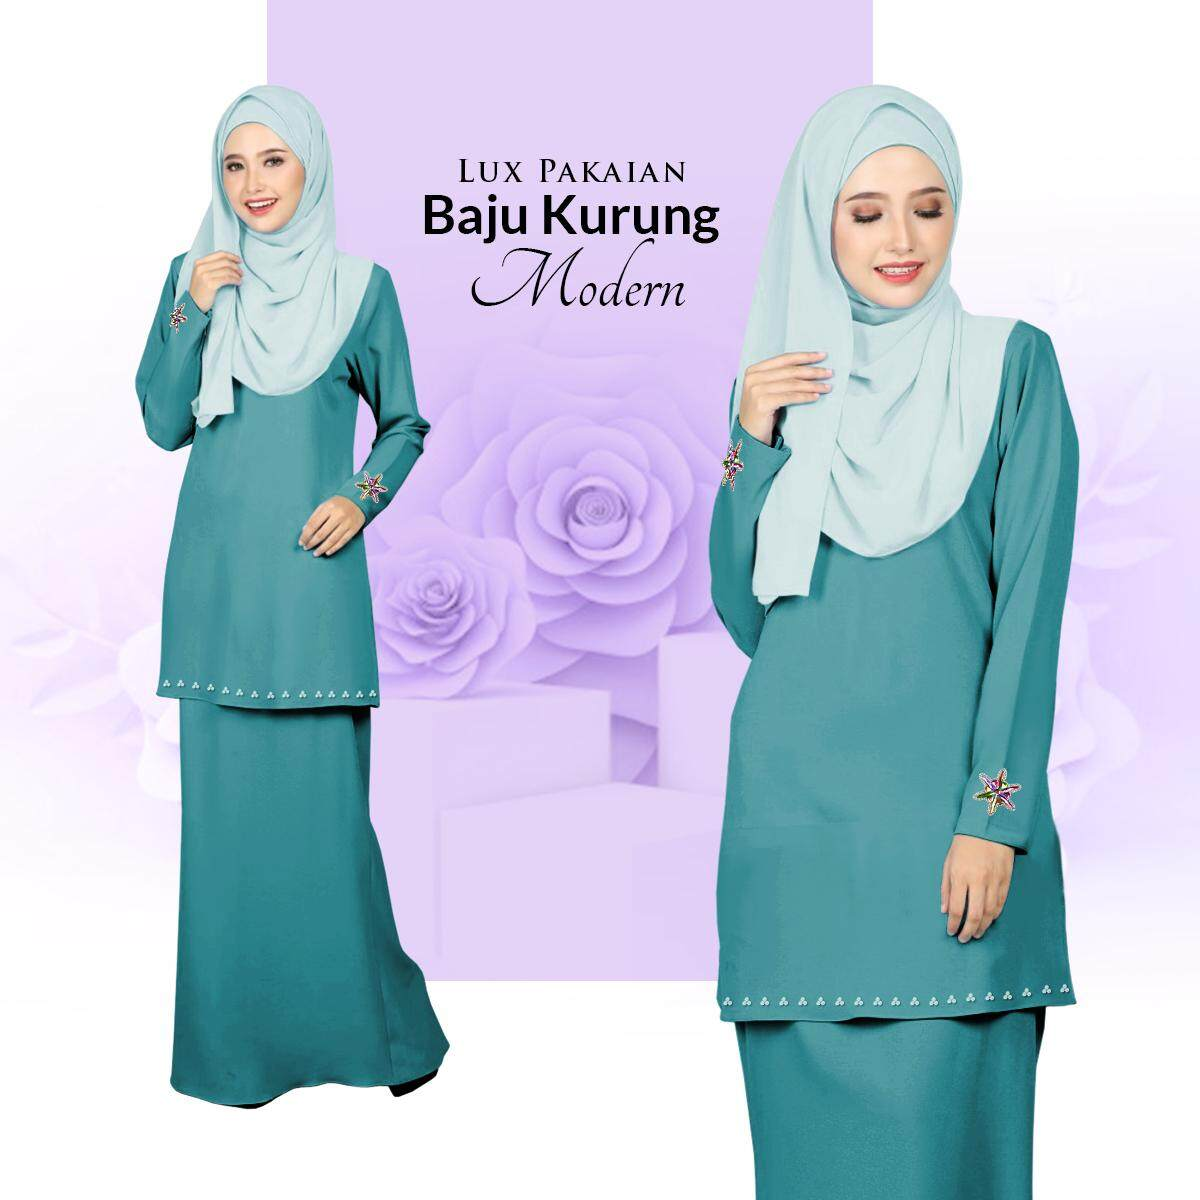 New Collection Lux Pakaian Baju Kurung Modern with Stylish Bunch & Batu Terkini